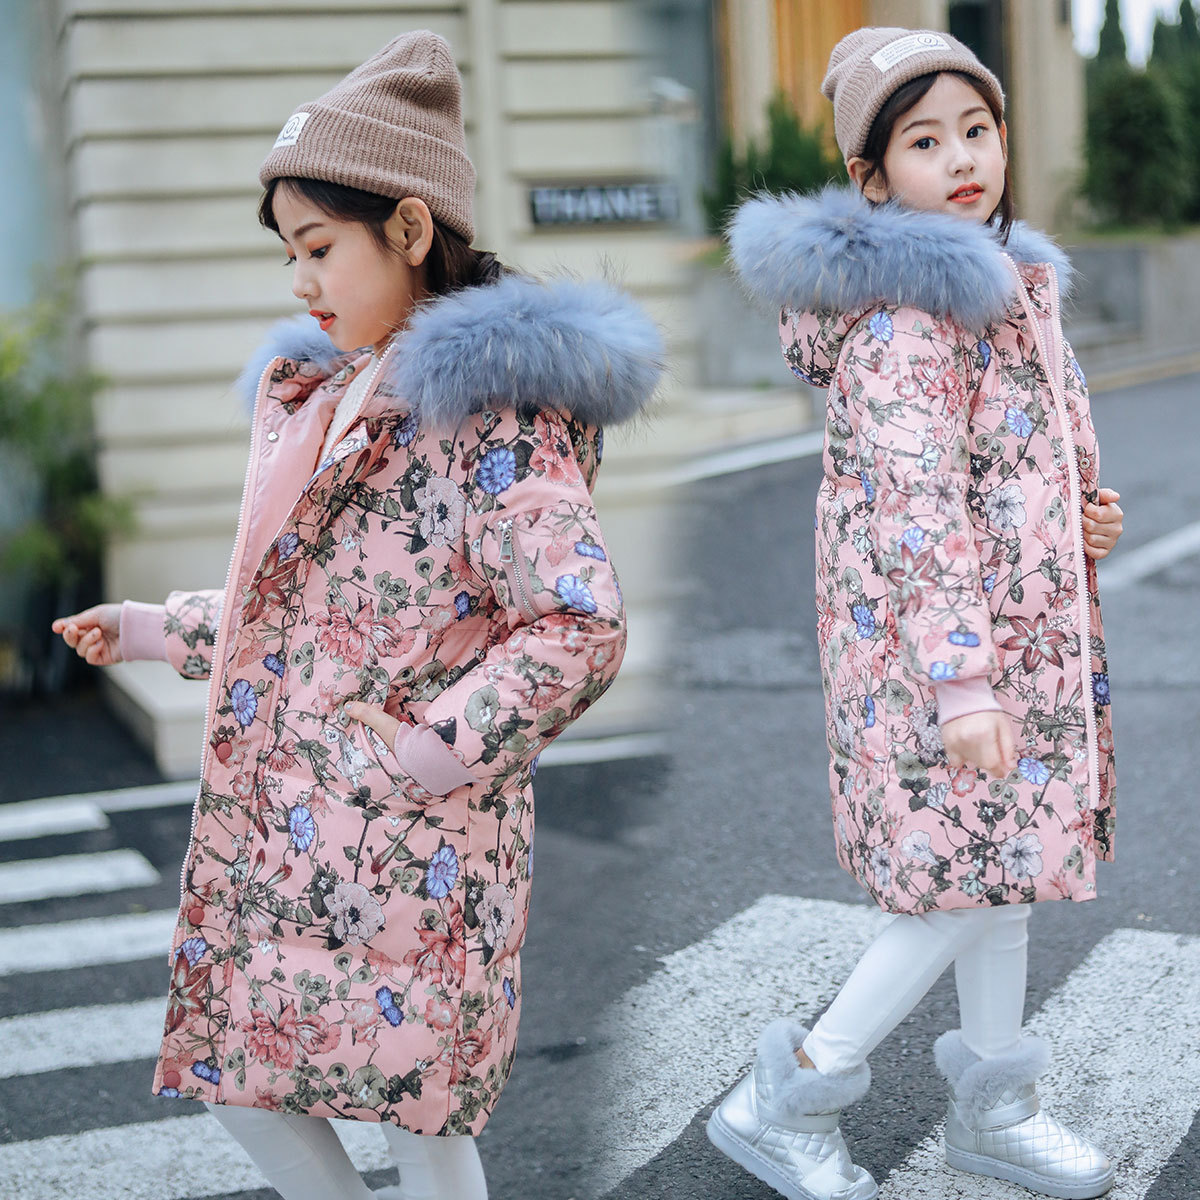 Children Jacket for Girls 2019 New Fashion Flower Print Mid-length Winter Jacket Big Girls White Duck Down Coat with Fur Collar